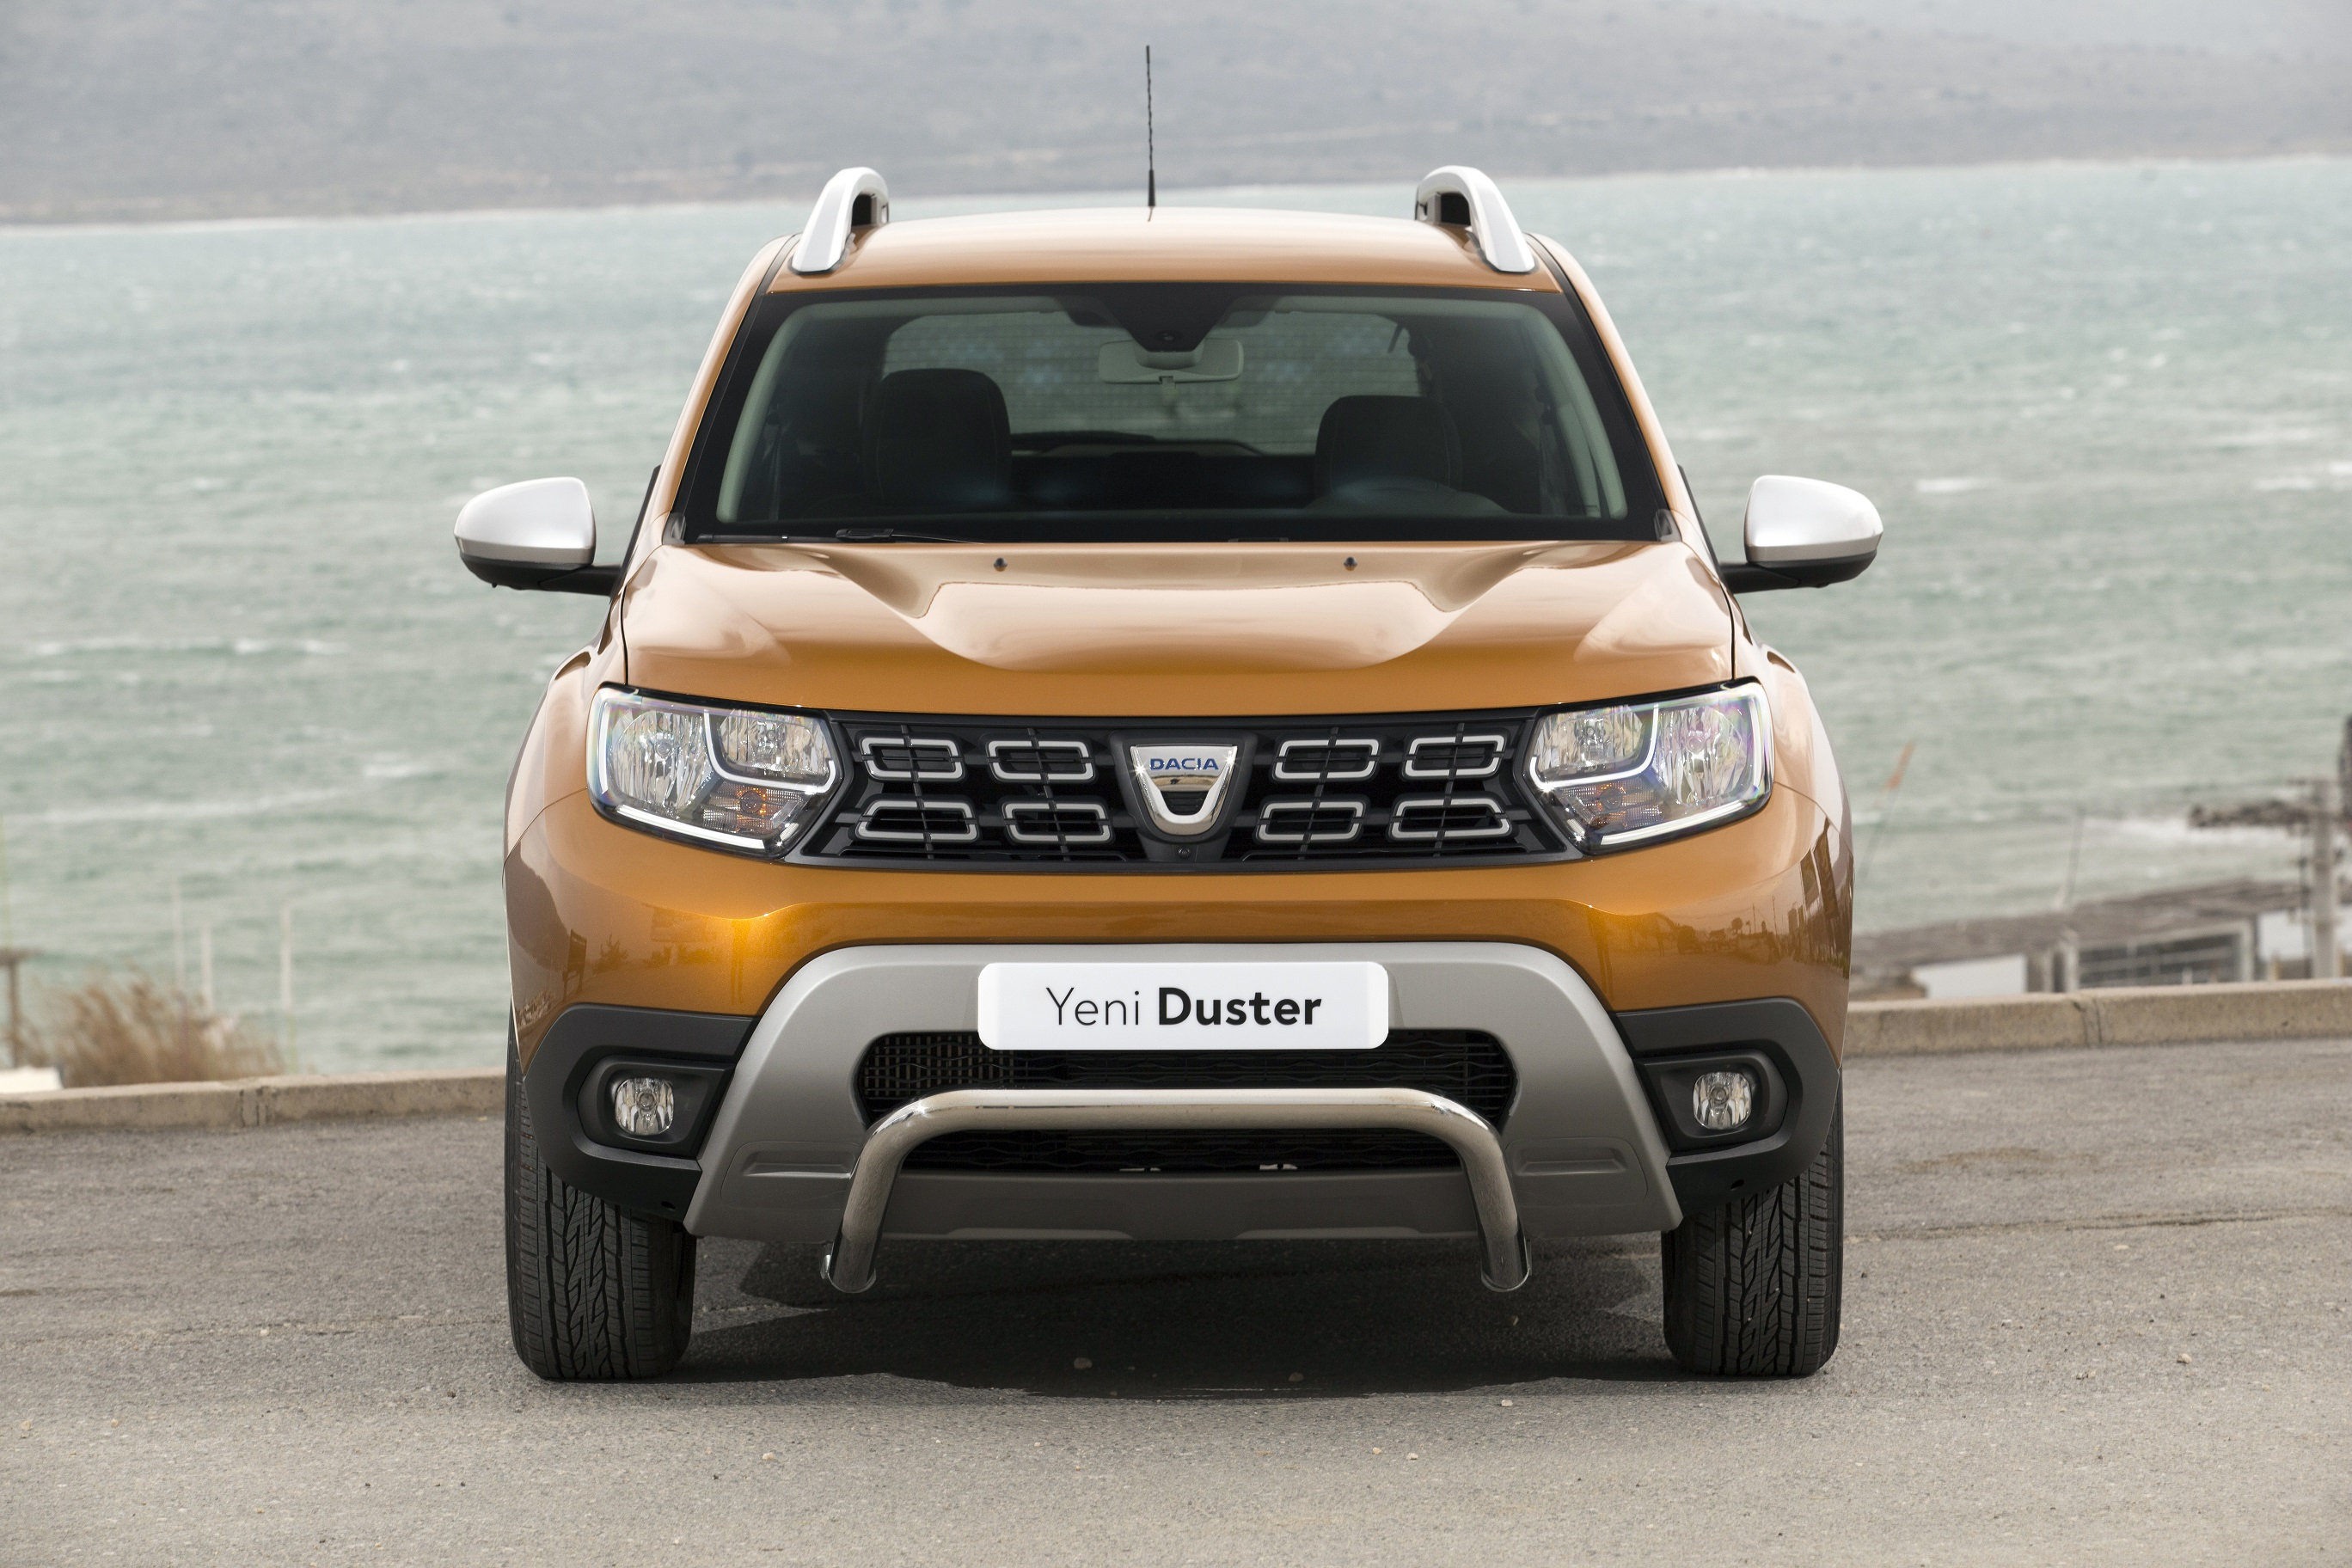 dacia duster yeni 1 3 tce benzinli motoruyla sat ta te fiyatlar donan mhaber. Black Bedroom Furniture Sets. Home Design Ideas